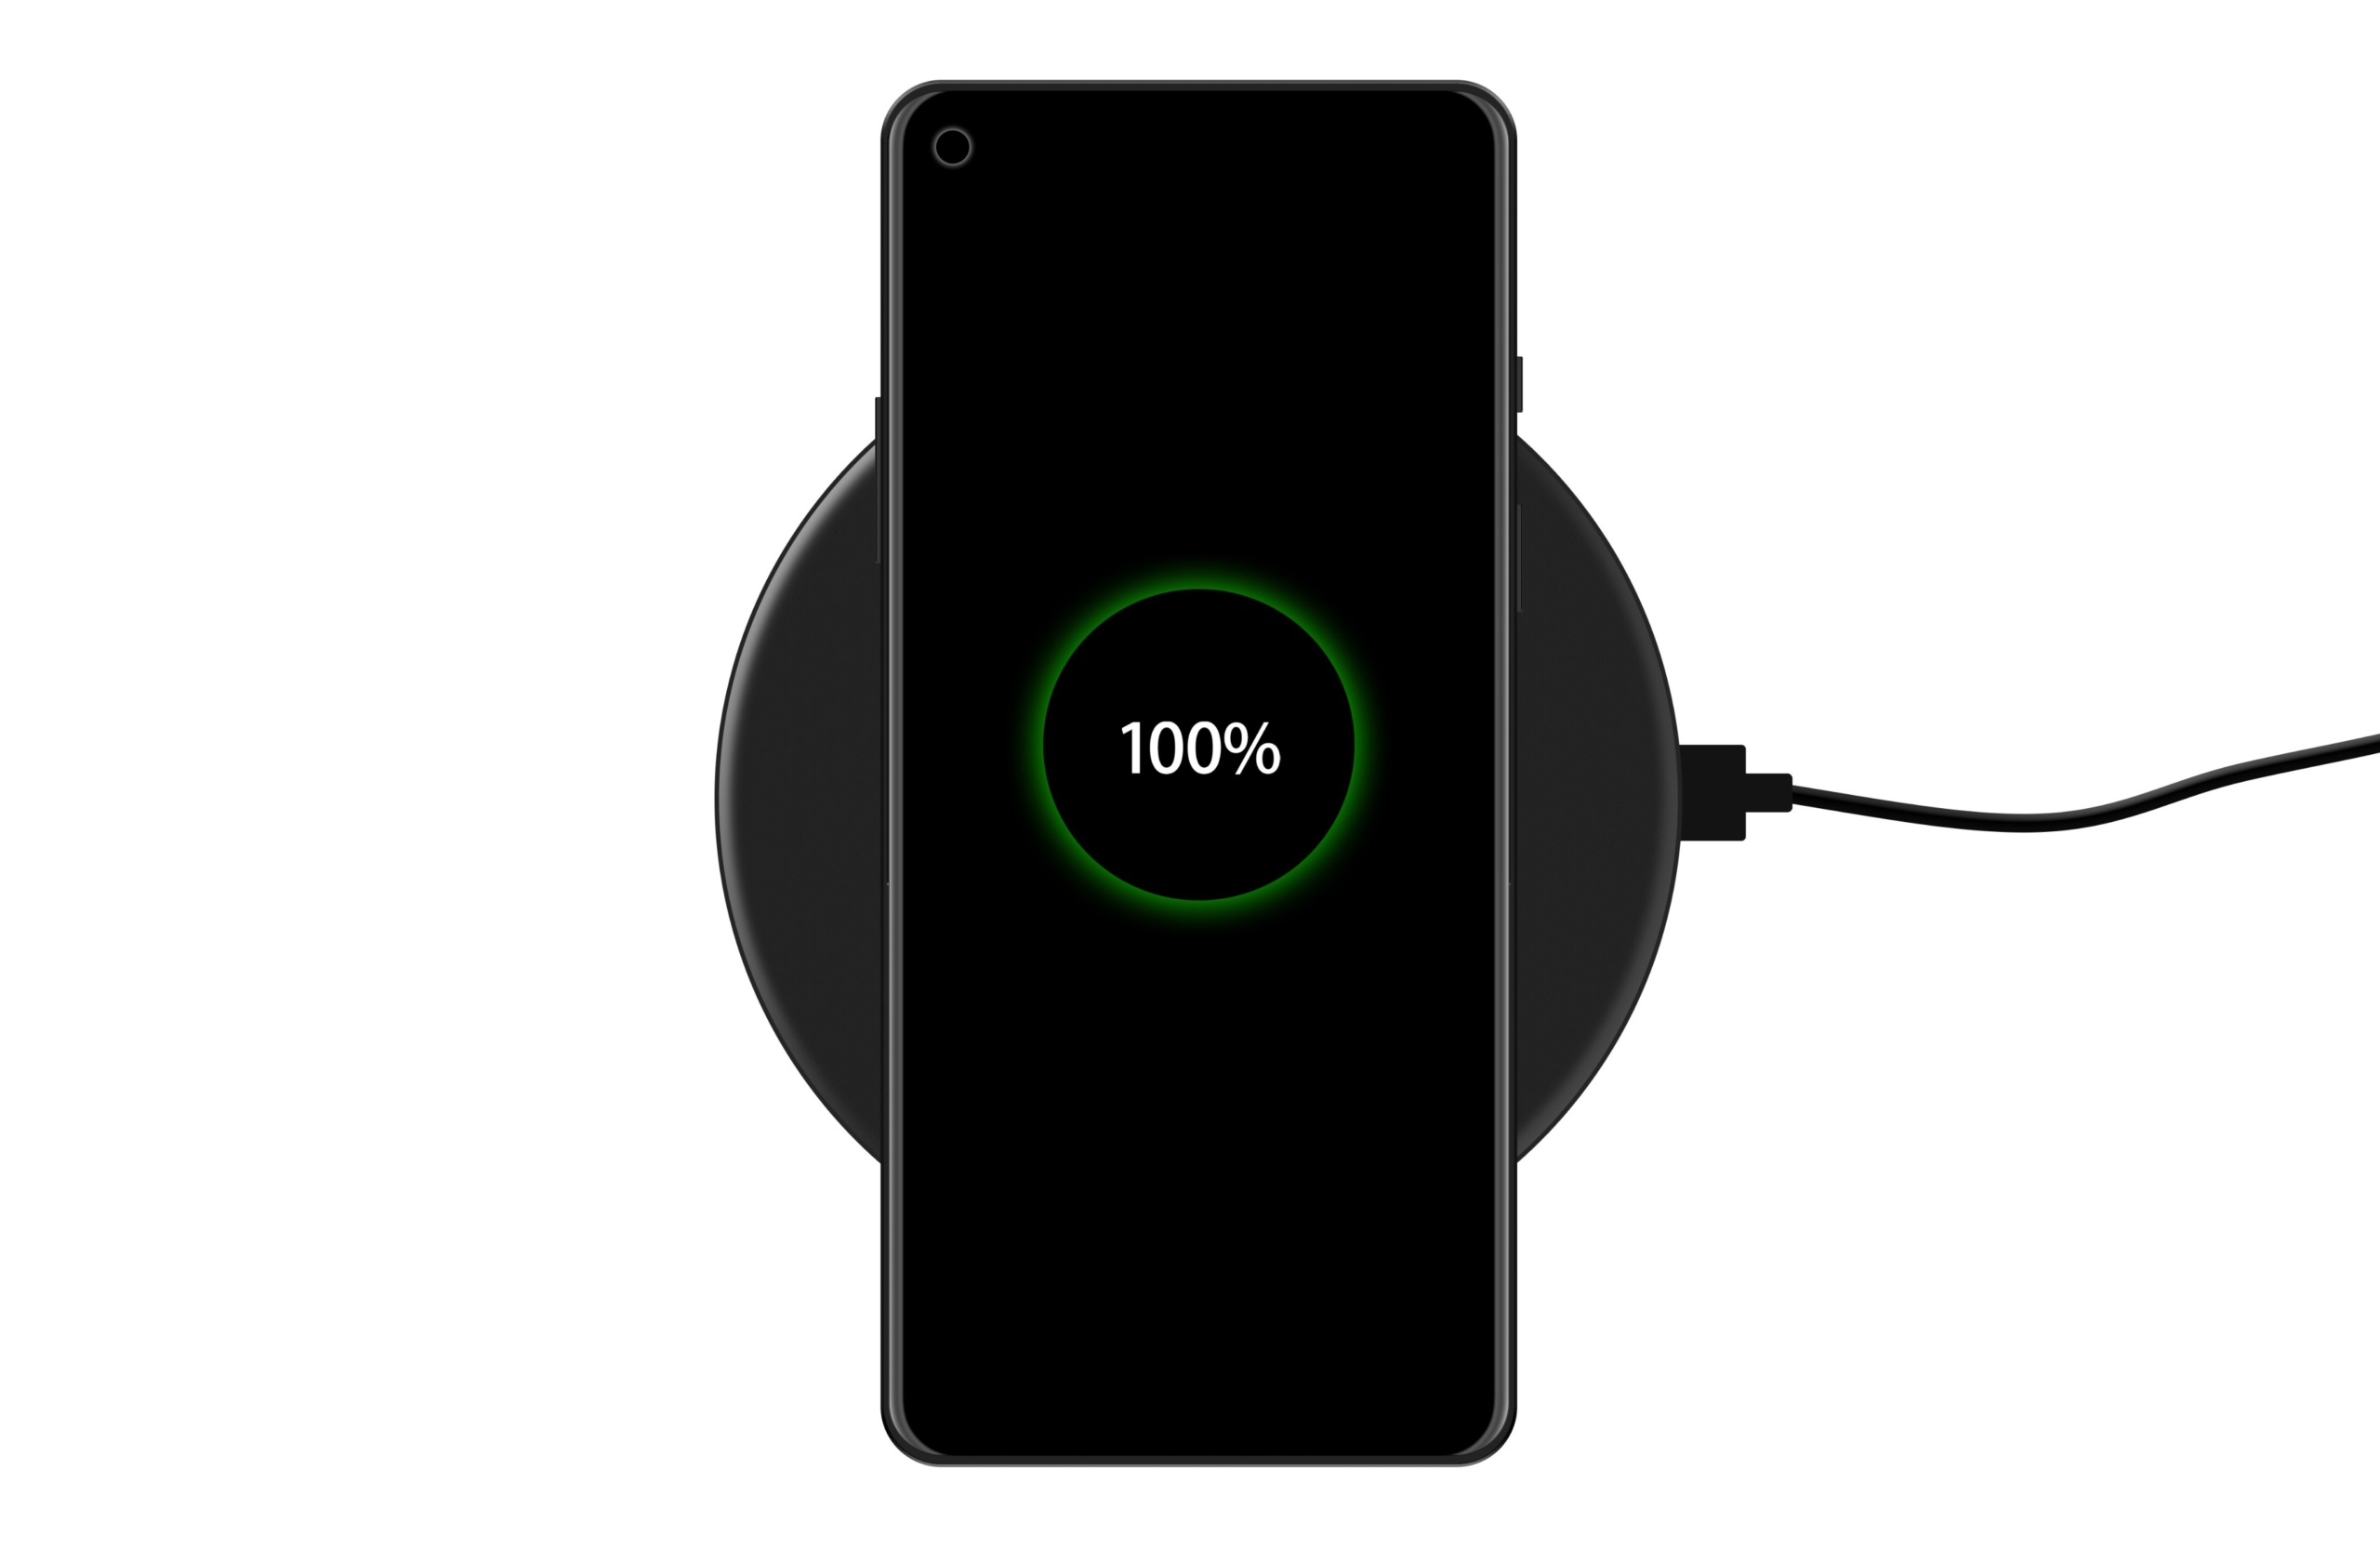 OnePlus 8 Pro looks likely to get wireless charging